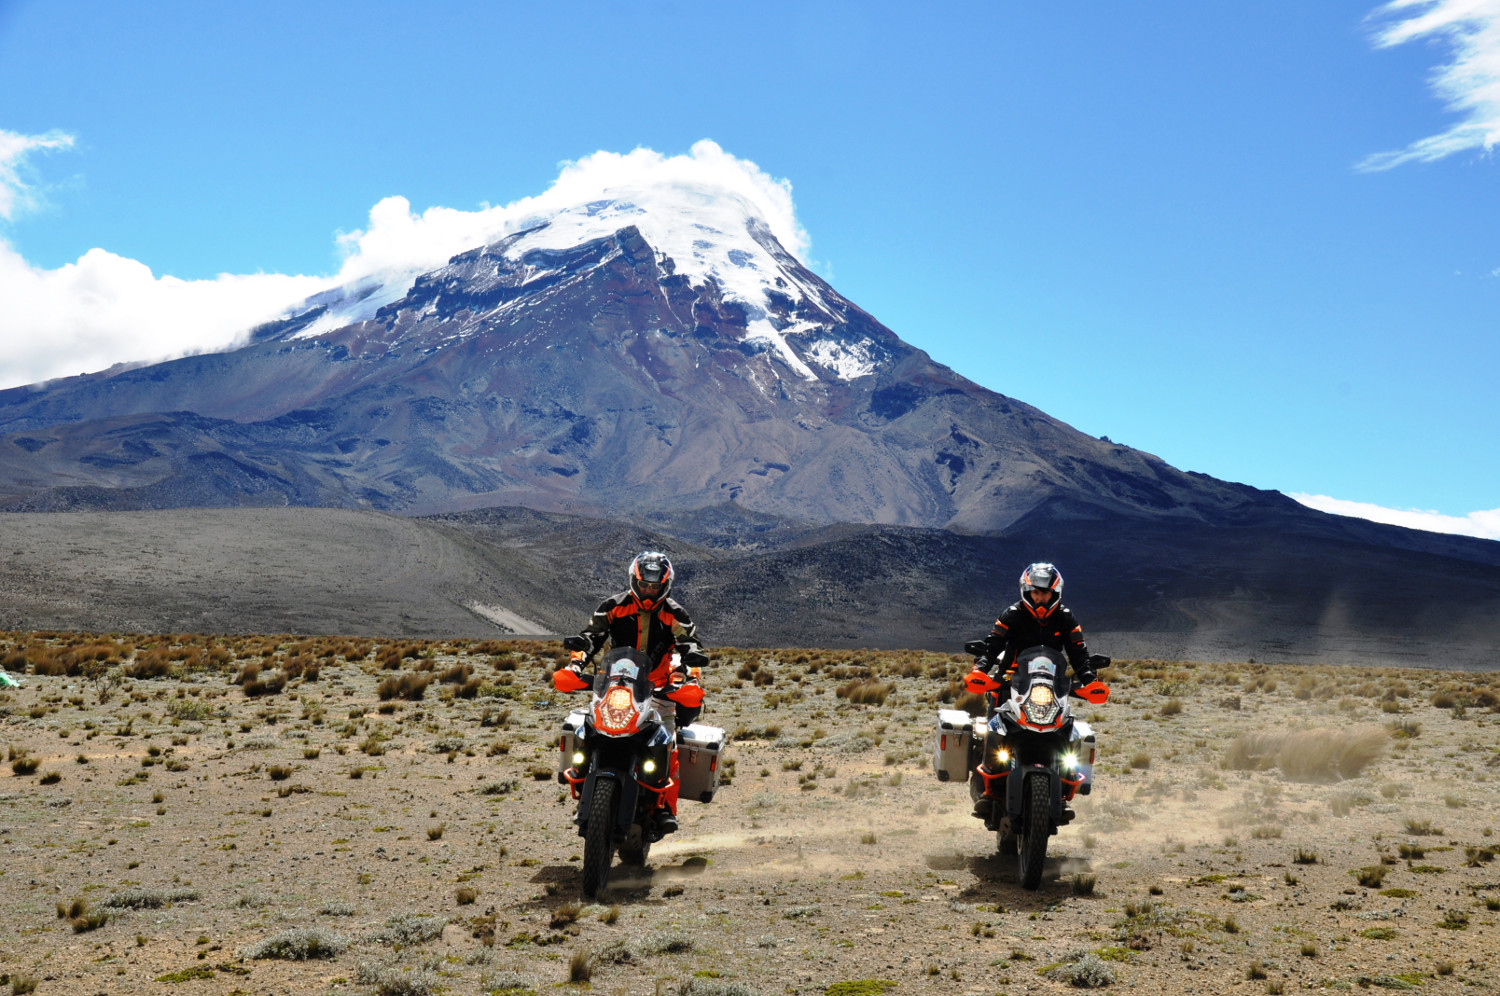 Einmal rund um den Chimborazo, mit 6.310m der höchste Berg Ecuadors | Riding a circuit around the Chimborazo, the highest mountain in Ecuador at 6,310 m